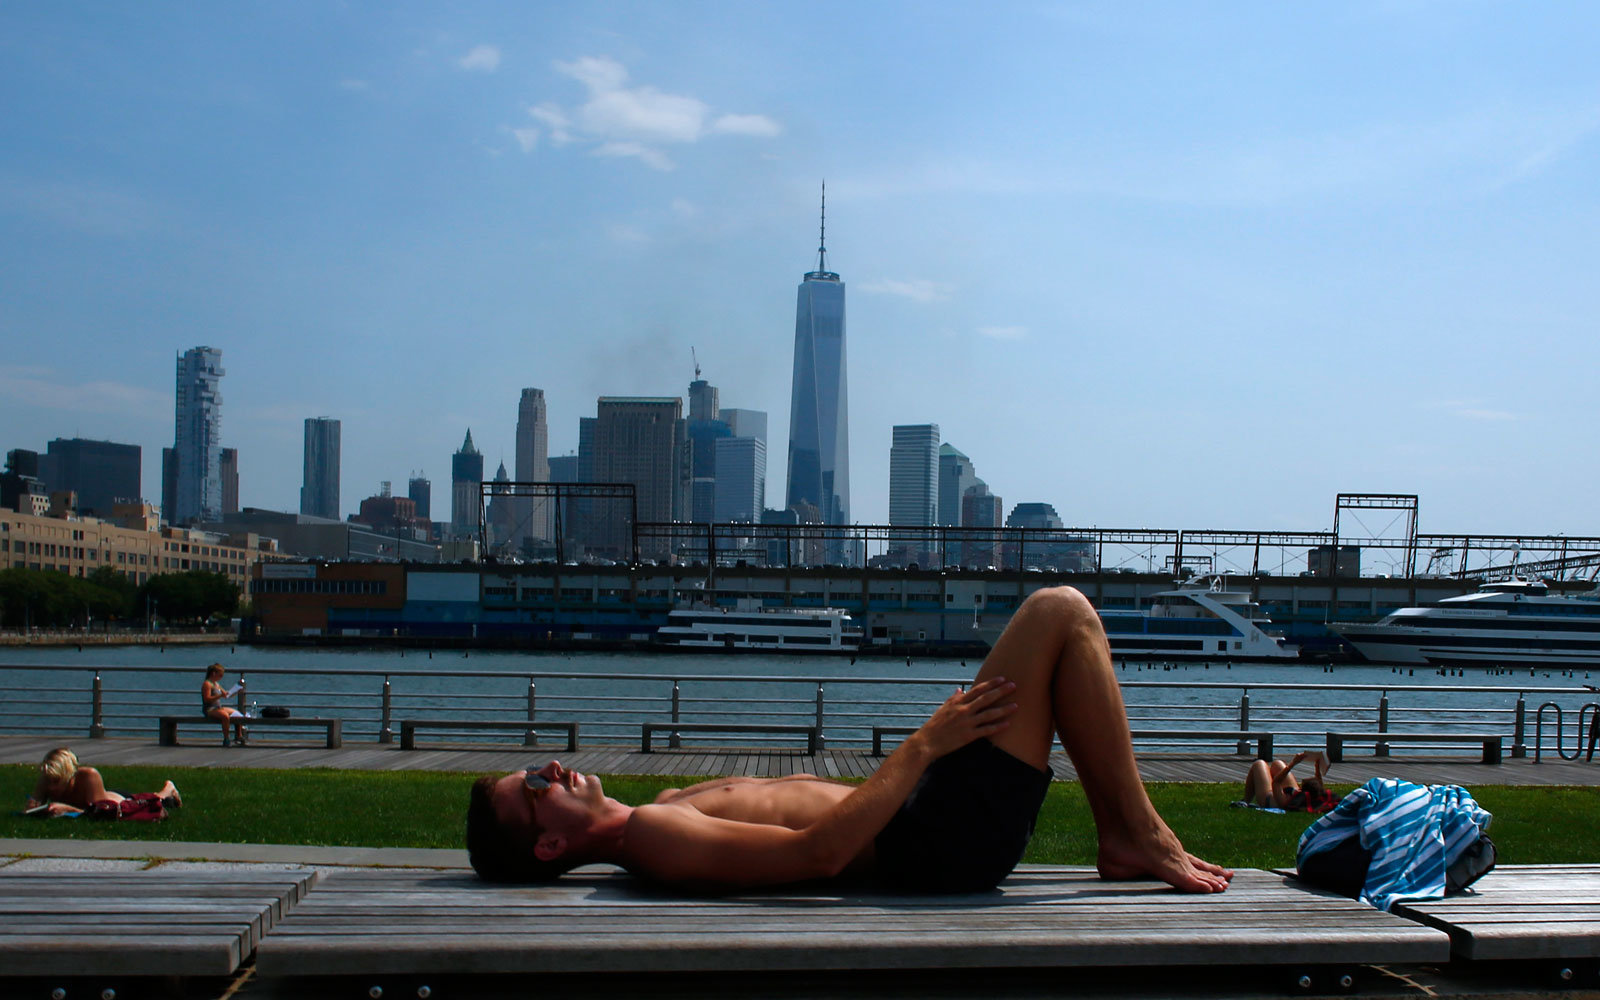 Man lies in the sun in NYC.